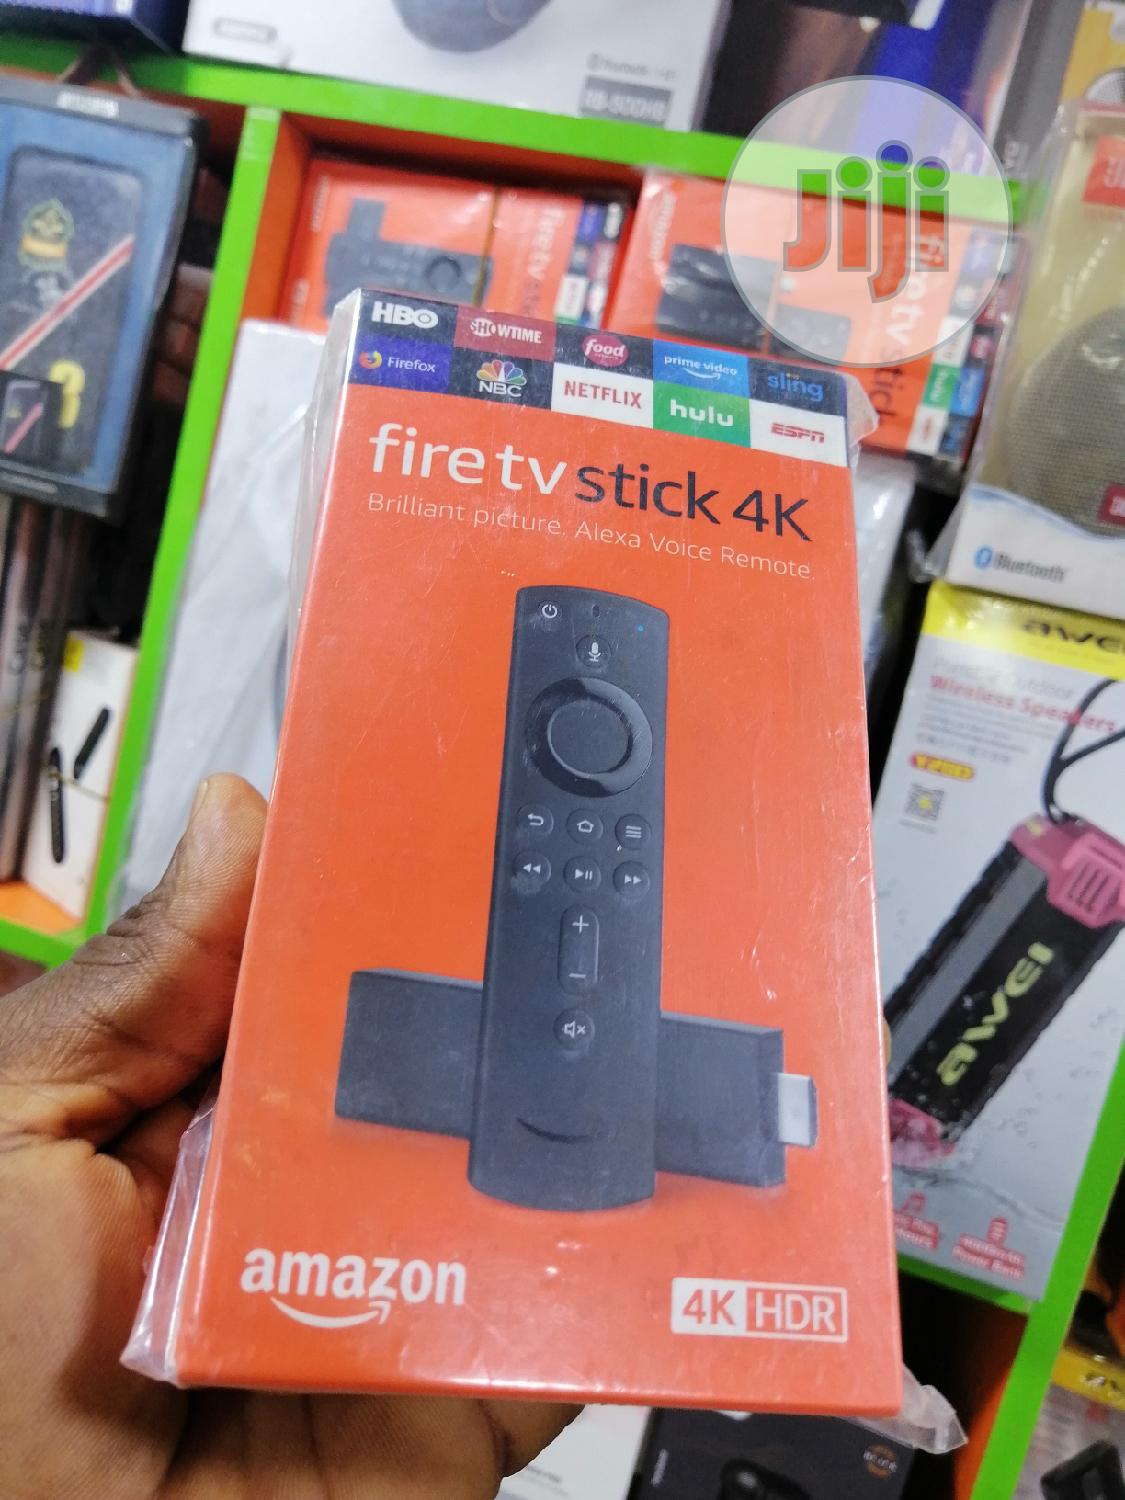 Fire Tv Stick 4k Amazon | Accessories & Supplies for Electronics for sale in Ikeja, Lagos State, Nigeria